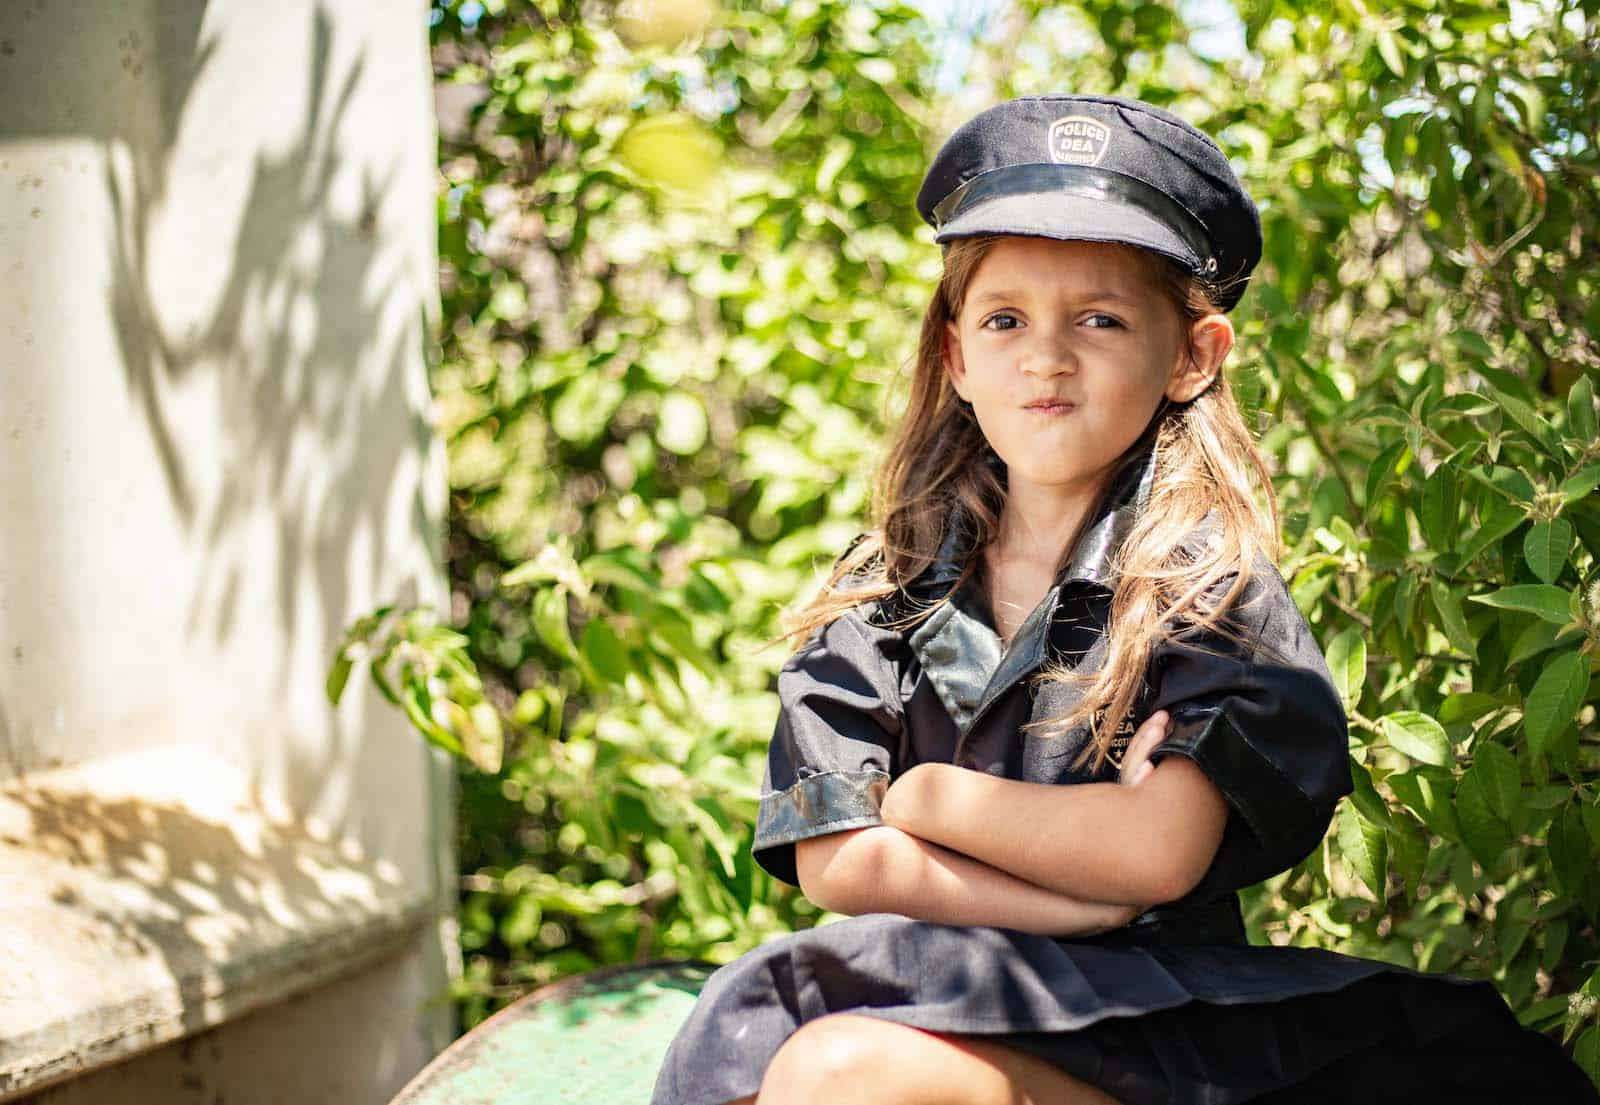 A young girl wearing a black police officer costume and cap crosses her arms in front of her, while sitting in front of a bush. Her lips are pursed in a funny face.